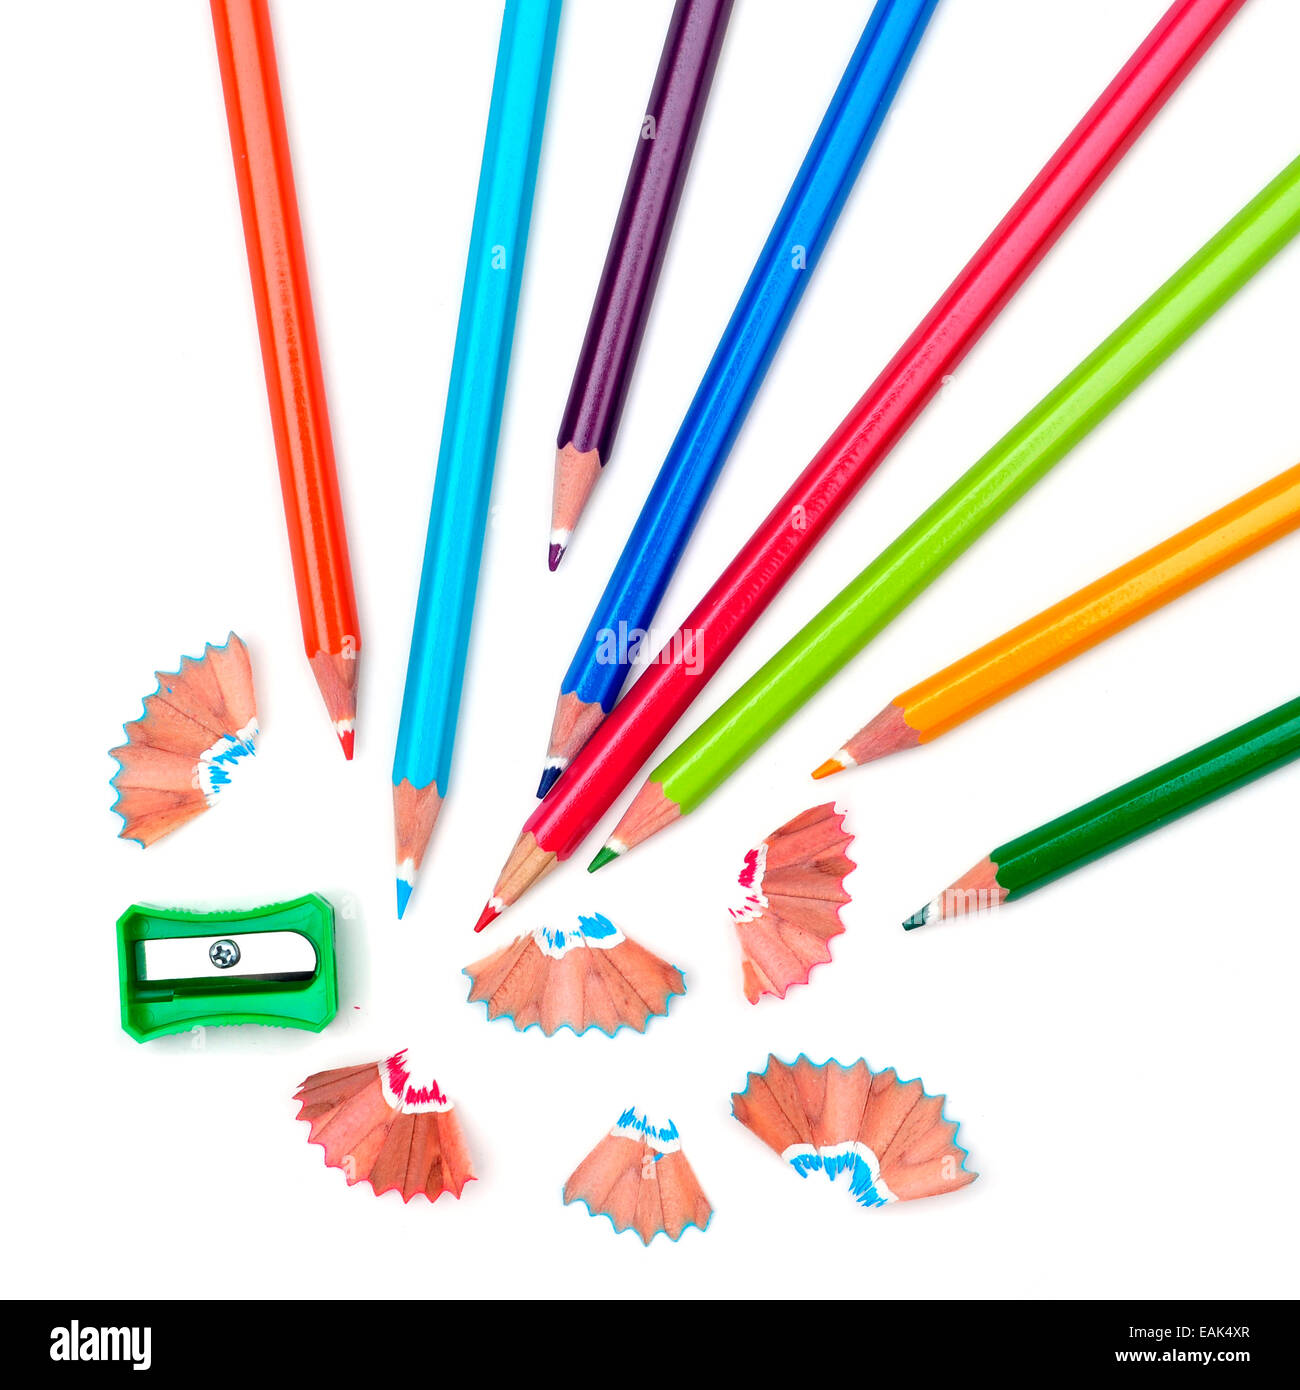 some colored pencils of different colors and a pencil sharpener and pencil shavings on a white background - Stock Image